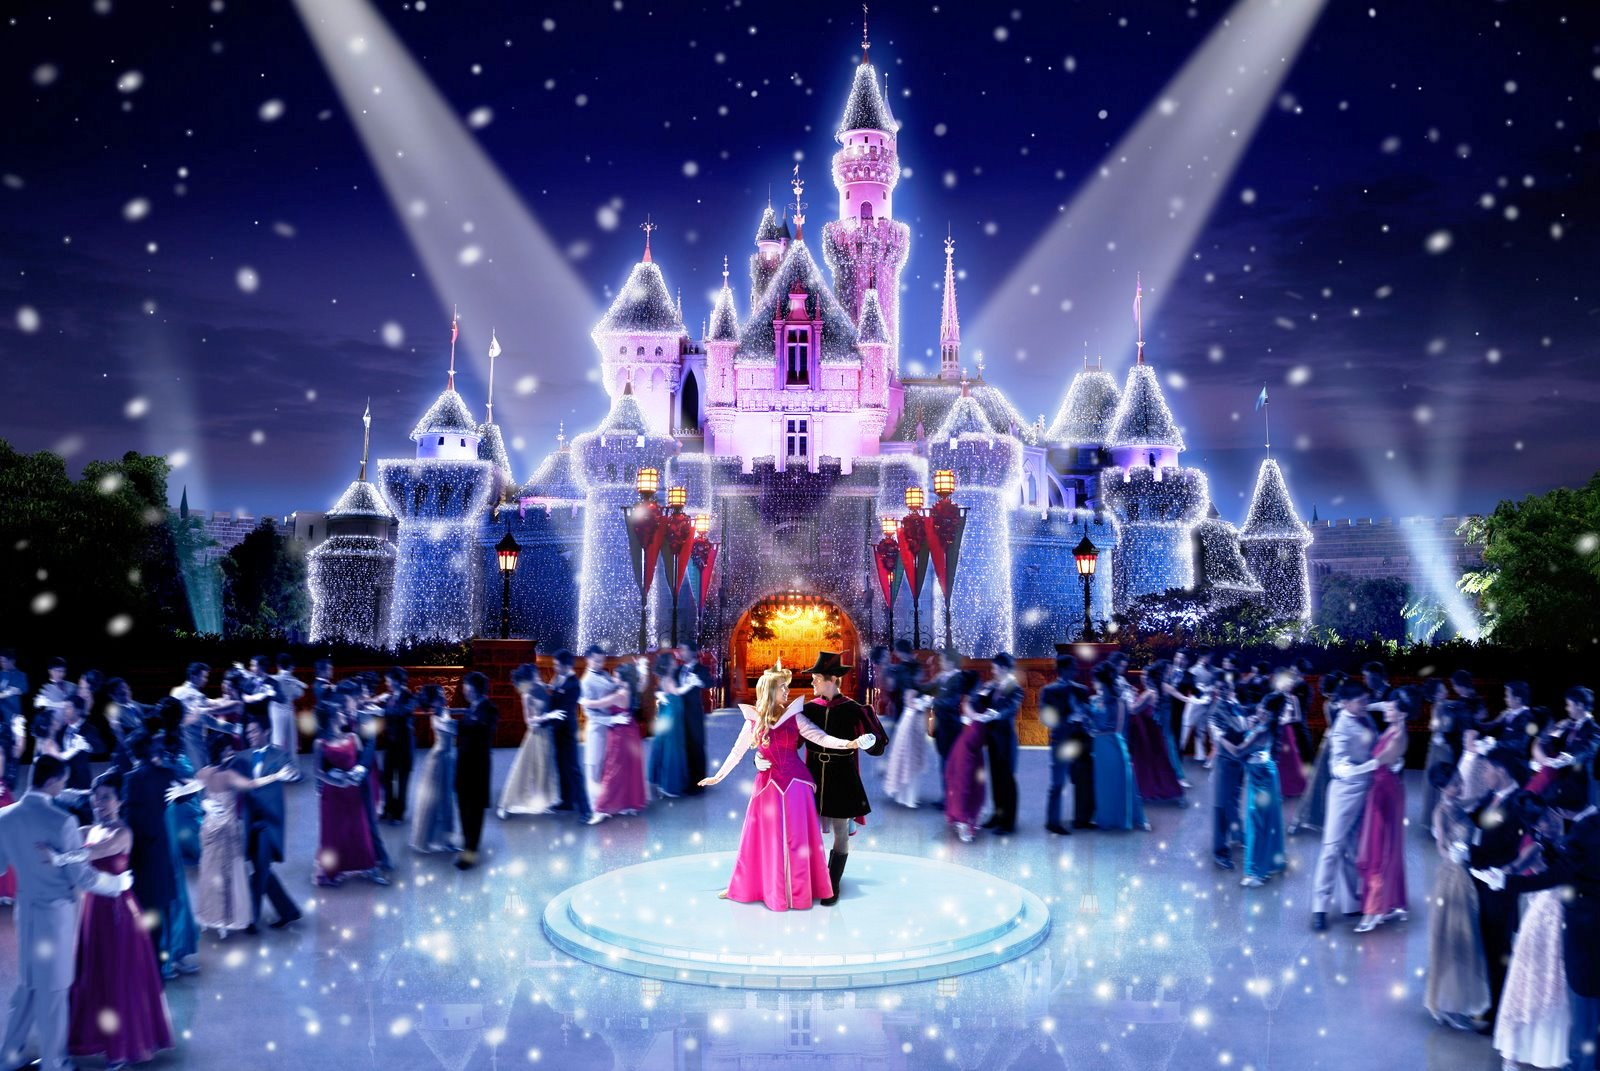 Royal christmas ball disney wiki fandom powered by wikia royal christmas ball voltagebd